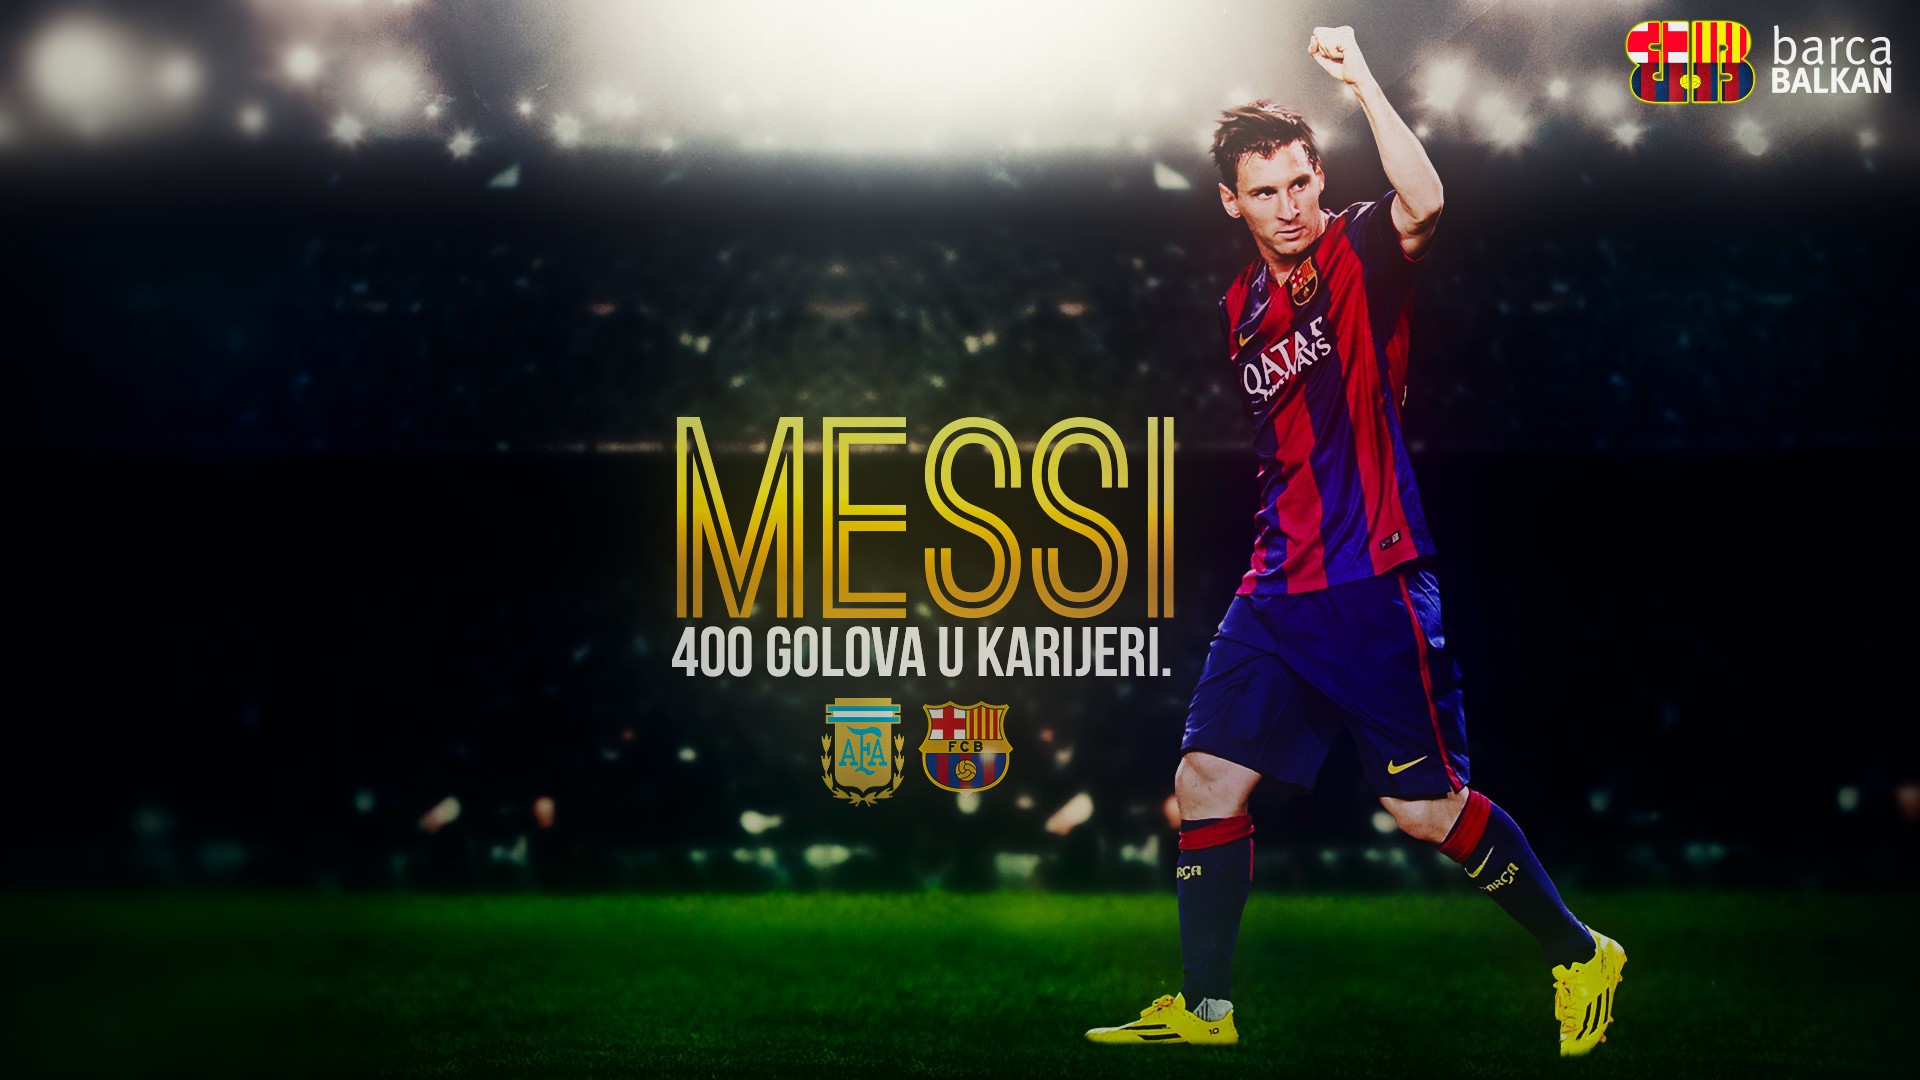 1920x1080 1920x1227 Best Lionel Messi wallpapers and backgrounds hd